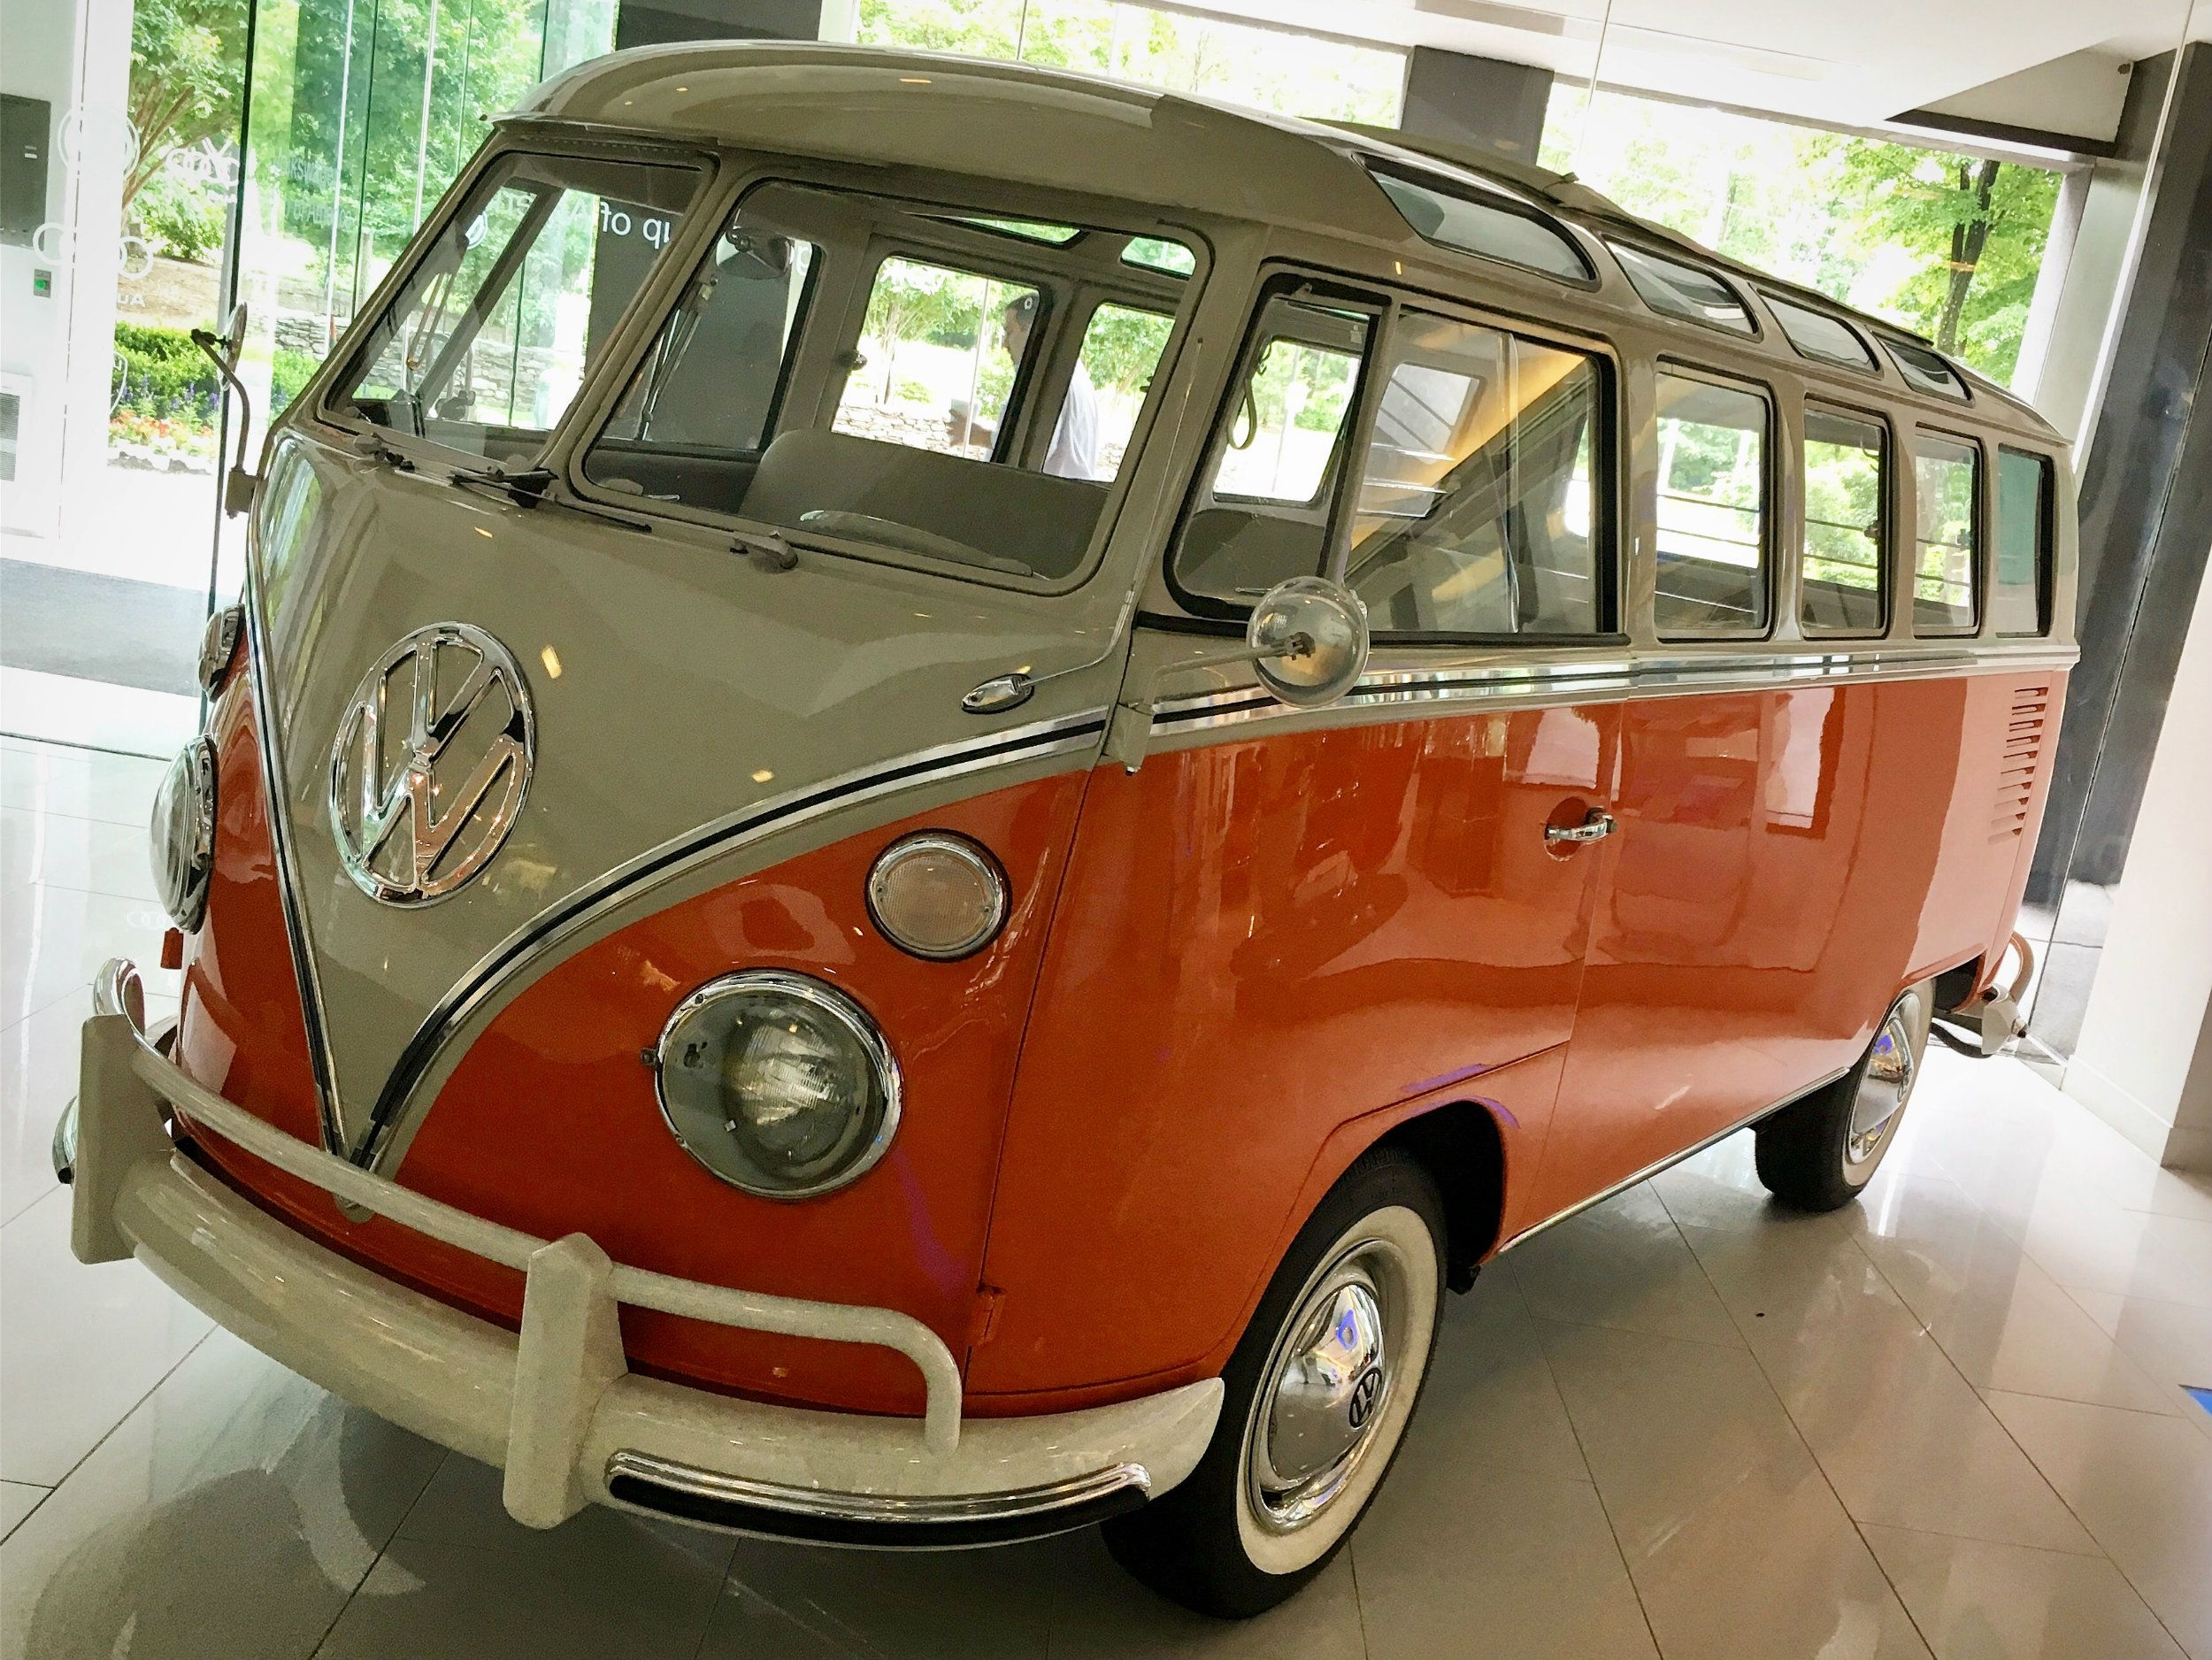 Always Wanted To Own A Classic 1967 Volkswagen Beetle Been